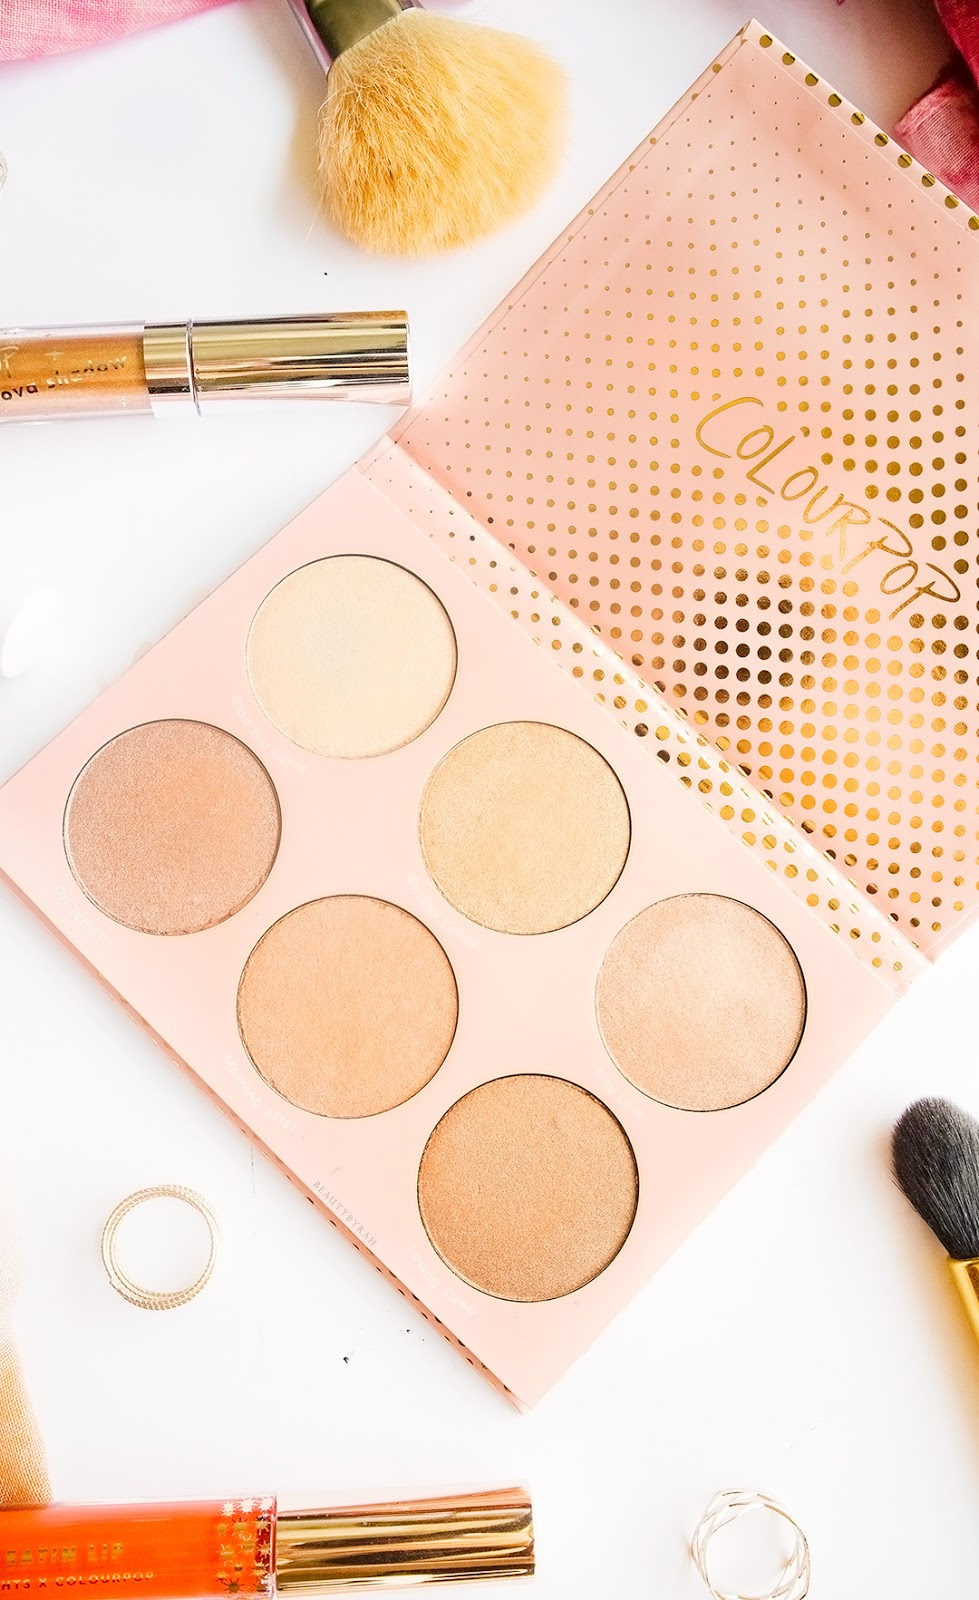 Colourpop In-Nude-Endo Highlighter Palette review and swatches